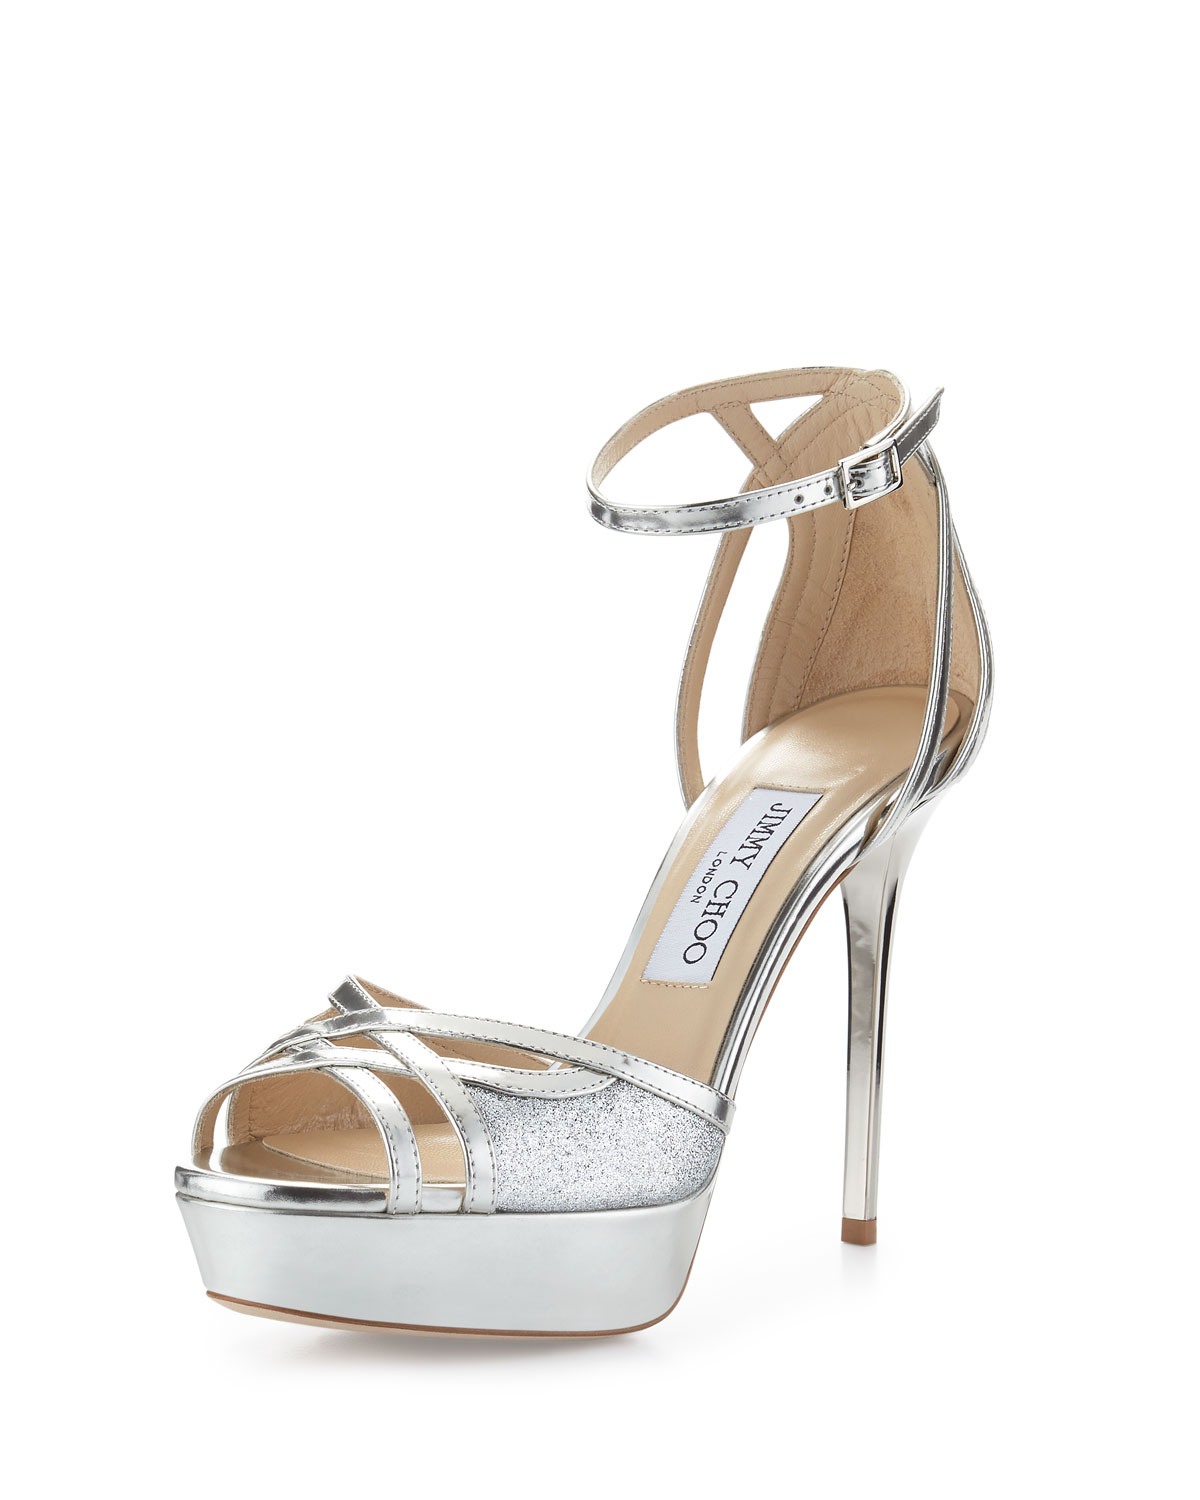 4e0ebbfdc8c3 Jimmy Choo Laurita Metallic Glitter 115mm Sandal